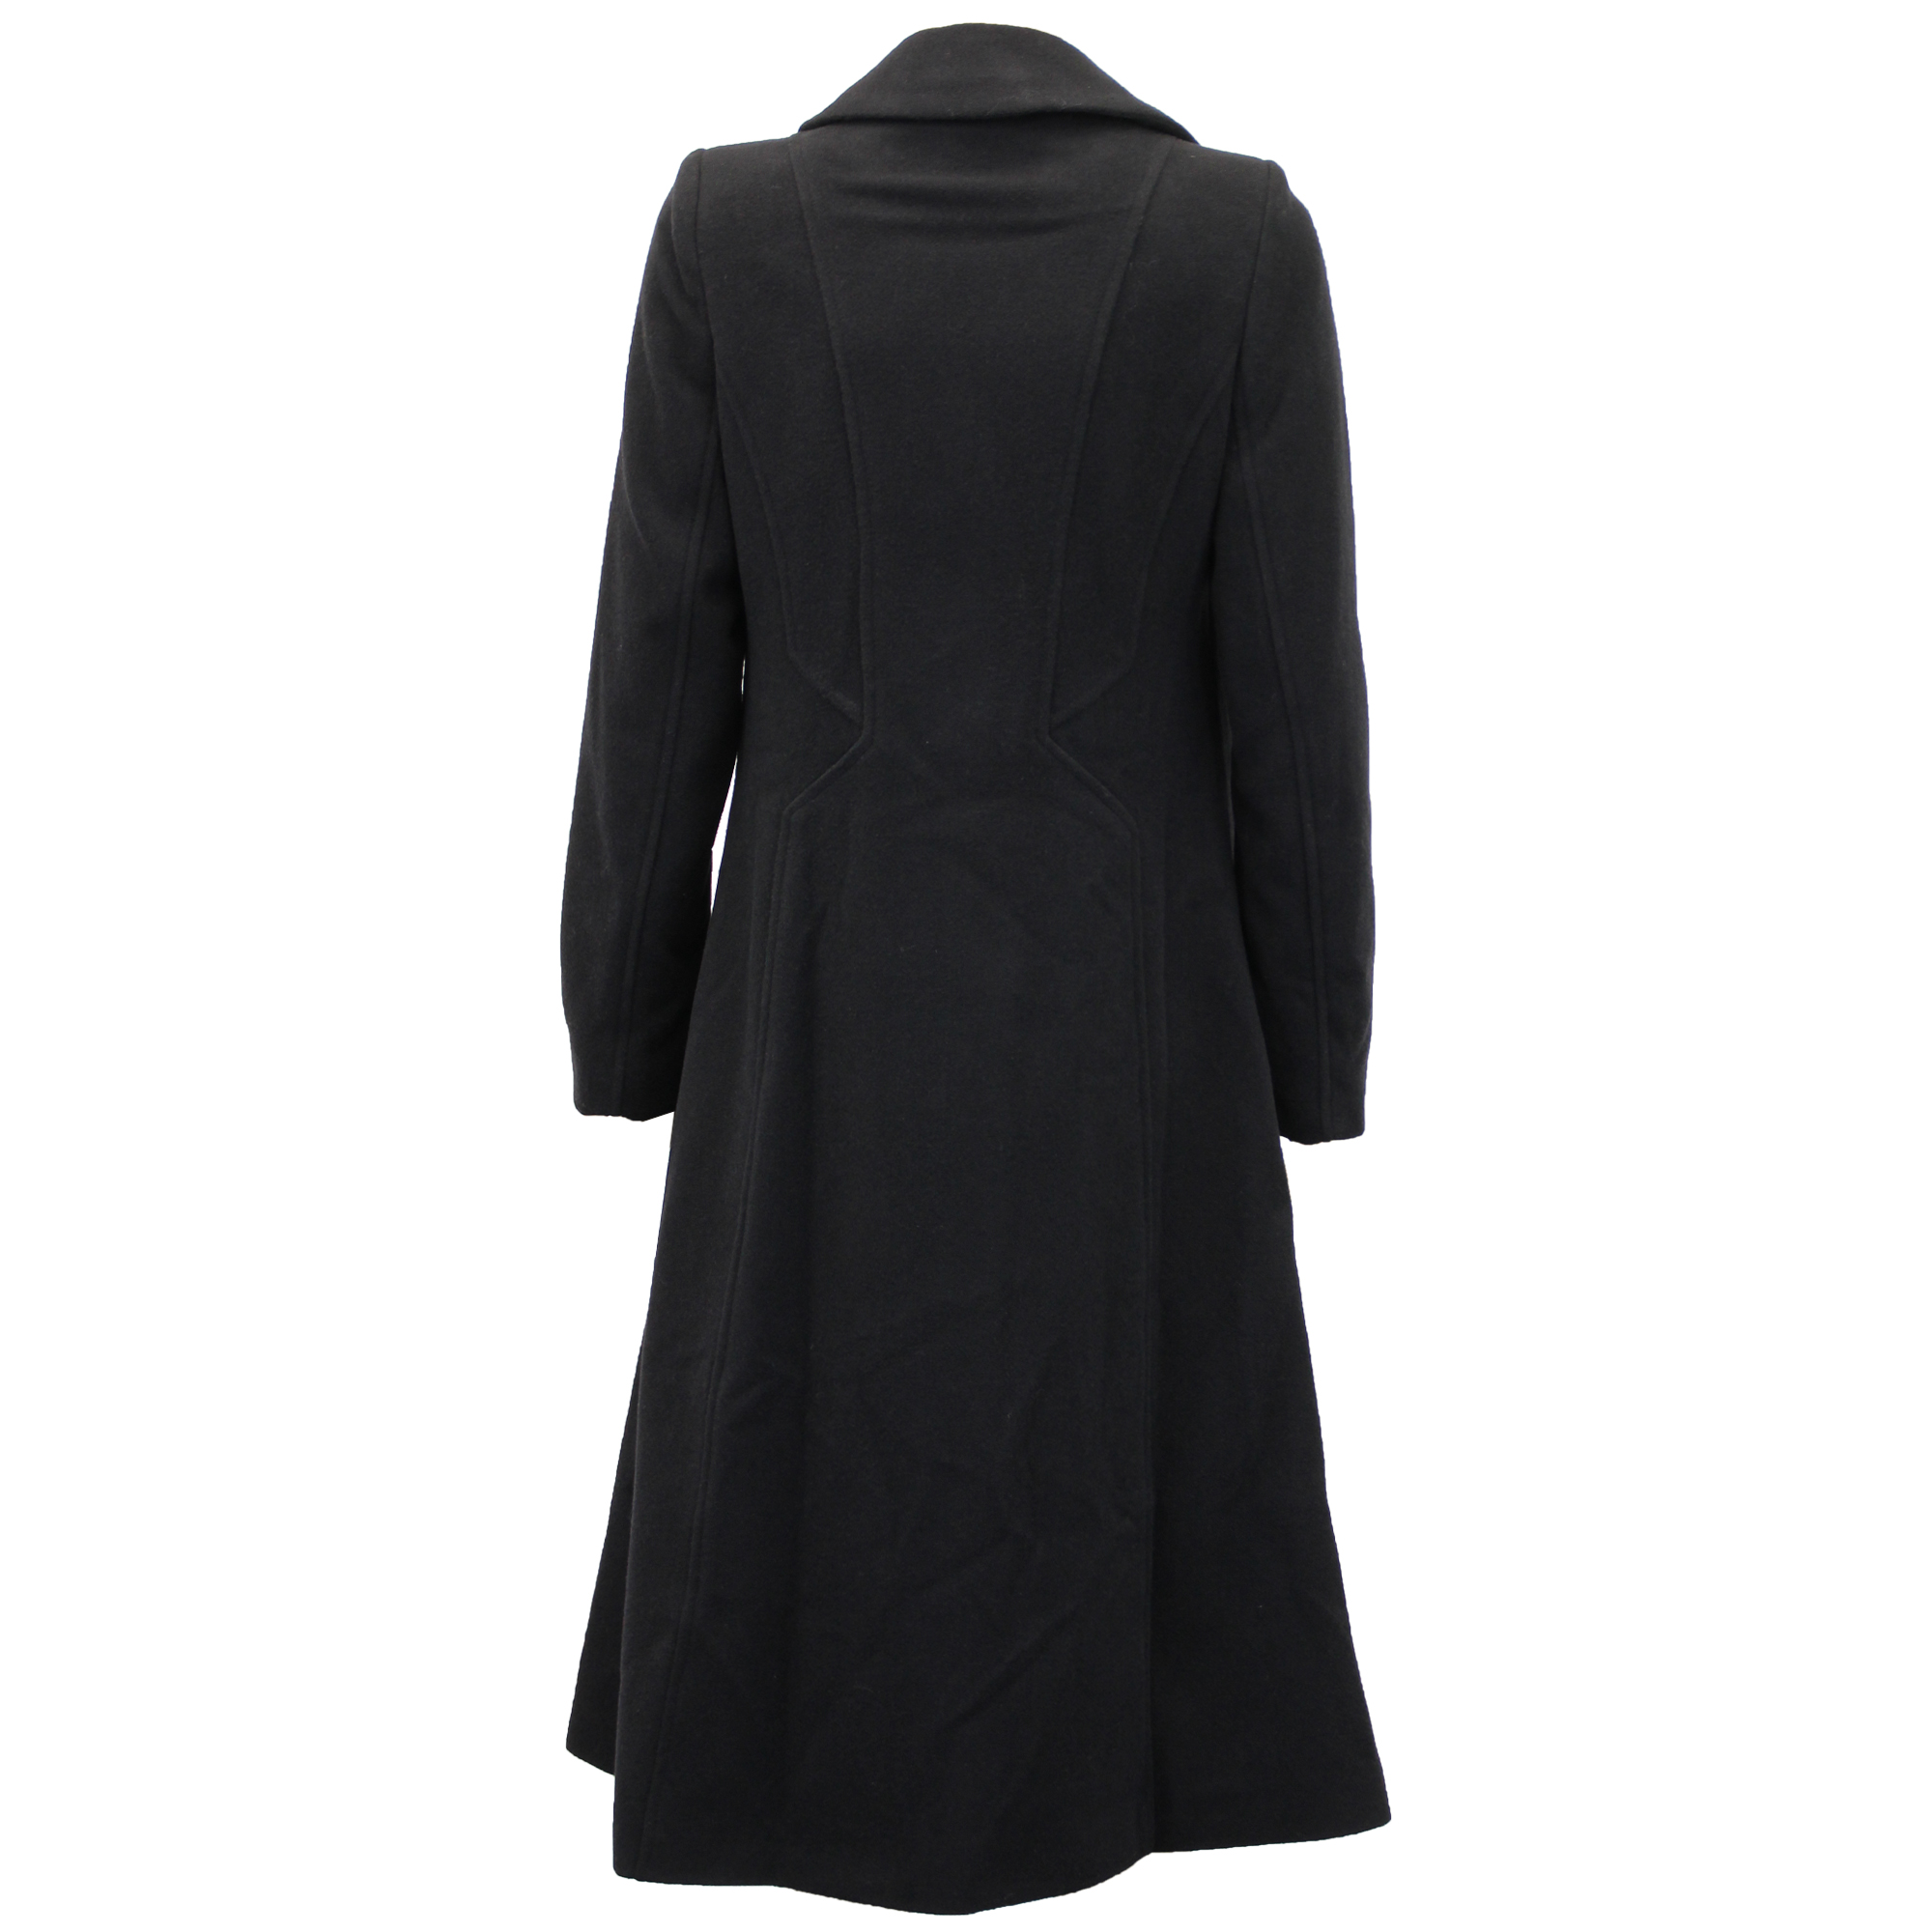 Ladies-Wool-Cashmere-Coat-Women-Jacket-Outerwear-Trench-Overcoat-Winter-Lined thumbnail 8